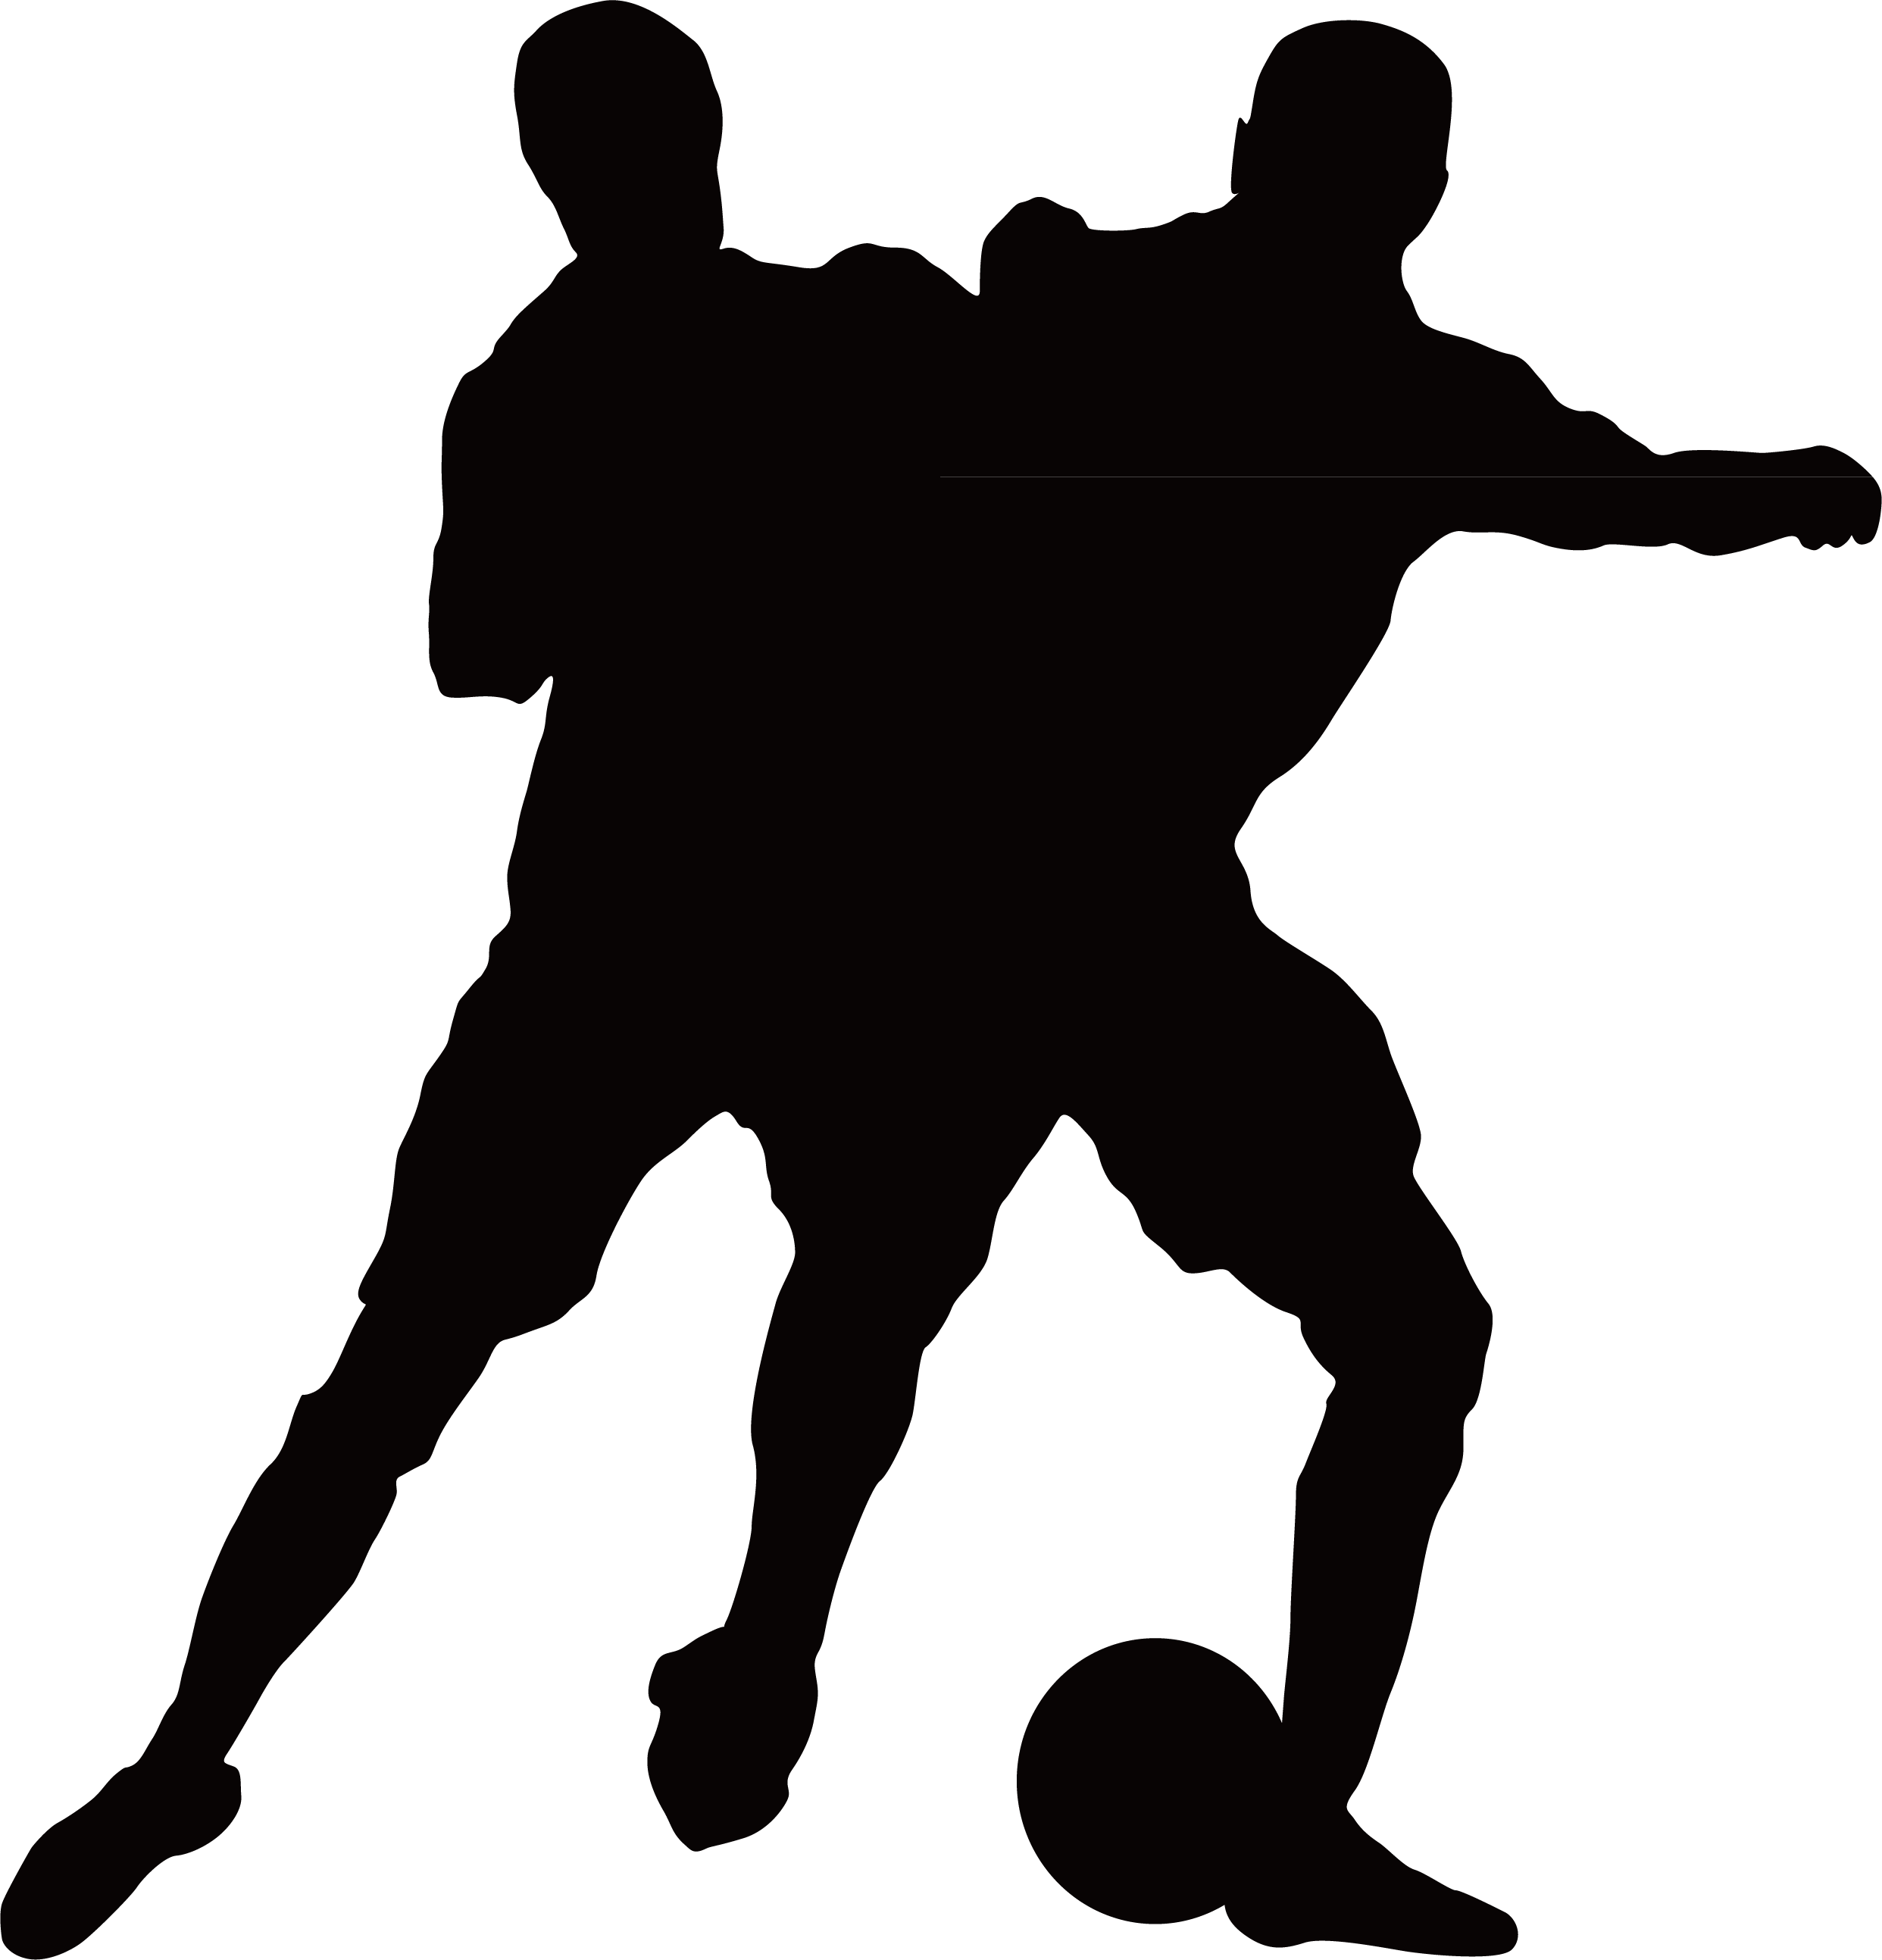 Football player silhouette clipart image Football player Illustration - Penalty child silhouette 2484*2587 ... image